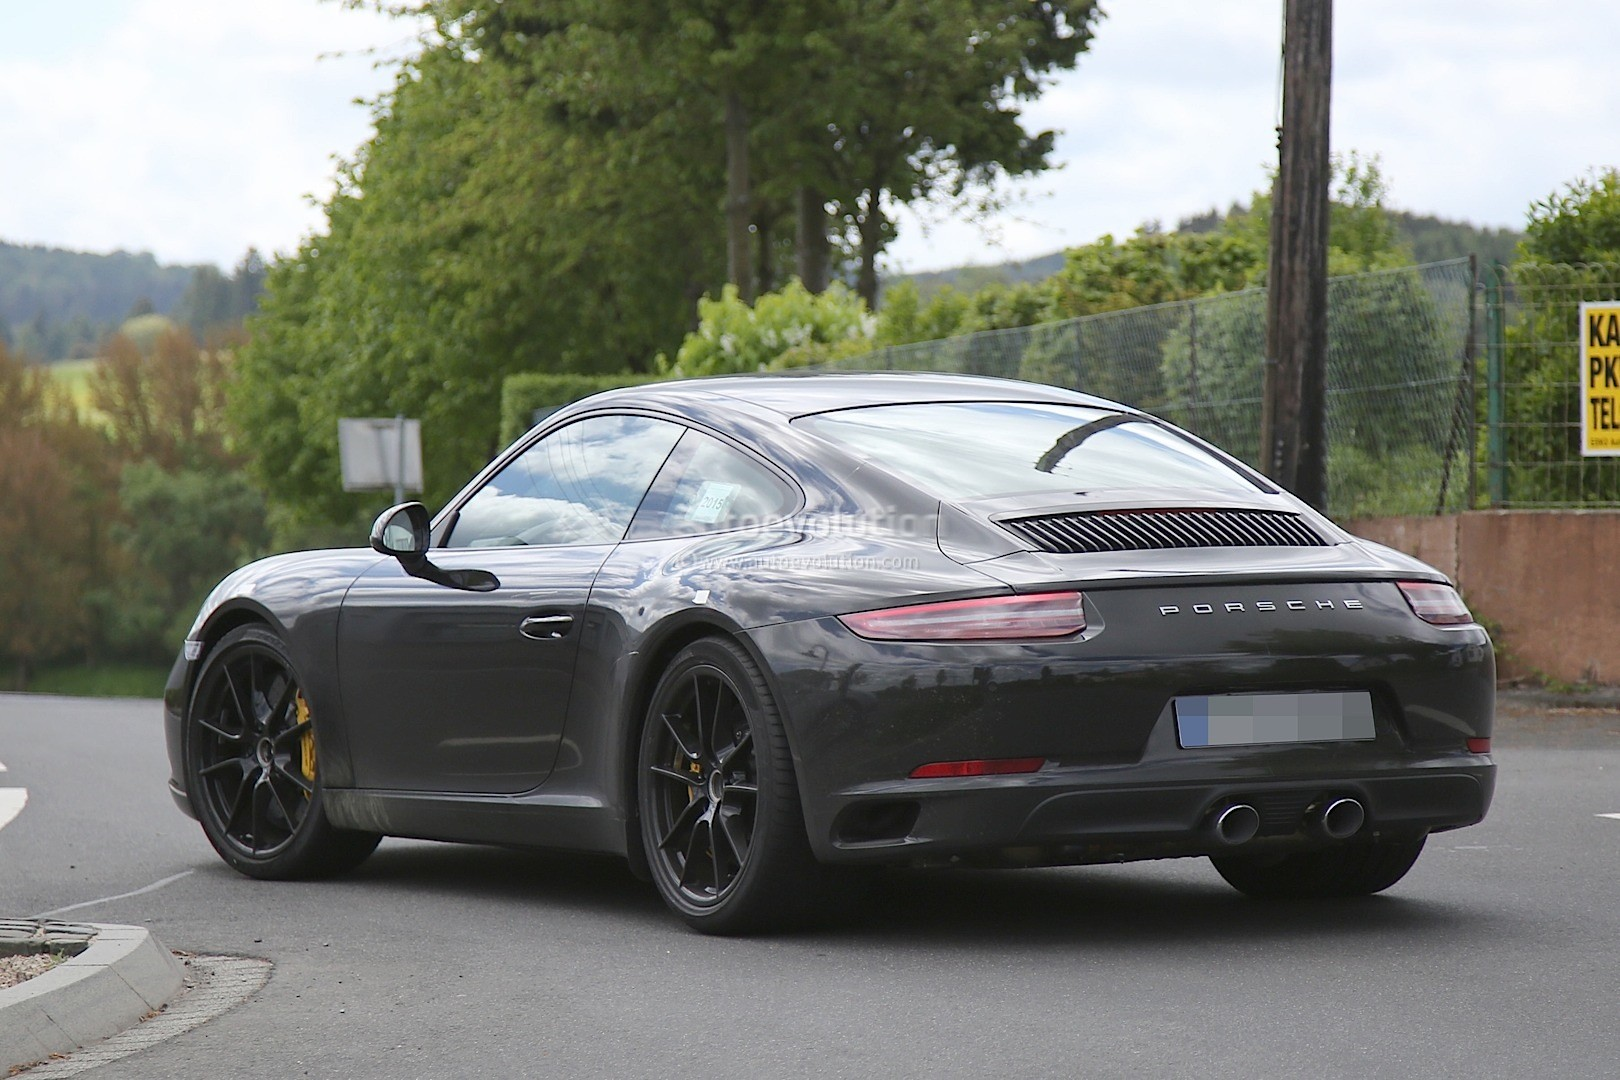 2016 Porsche Panamera Gts >> 2016 Porsche 911 Revealed in Latest Spyshots, Facelift Looks Even More Retro - autoevolution